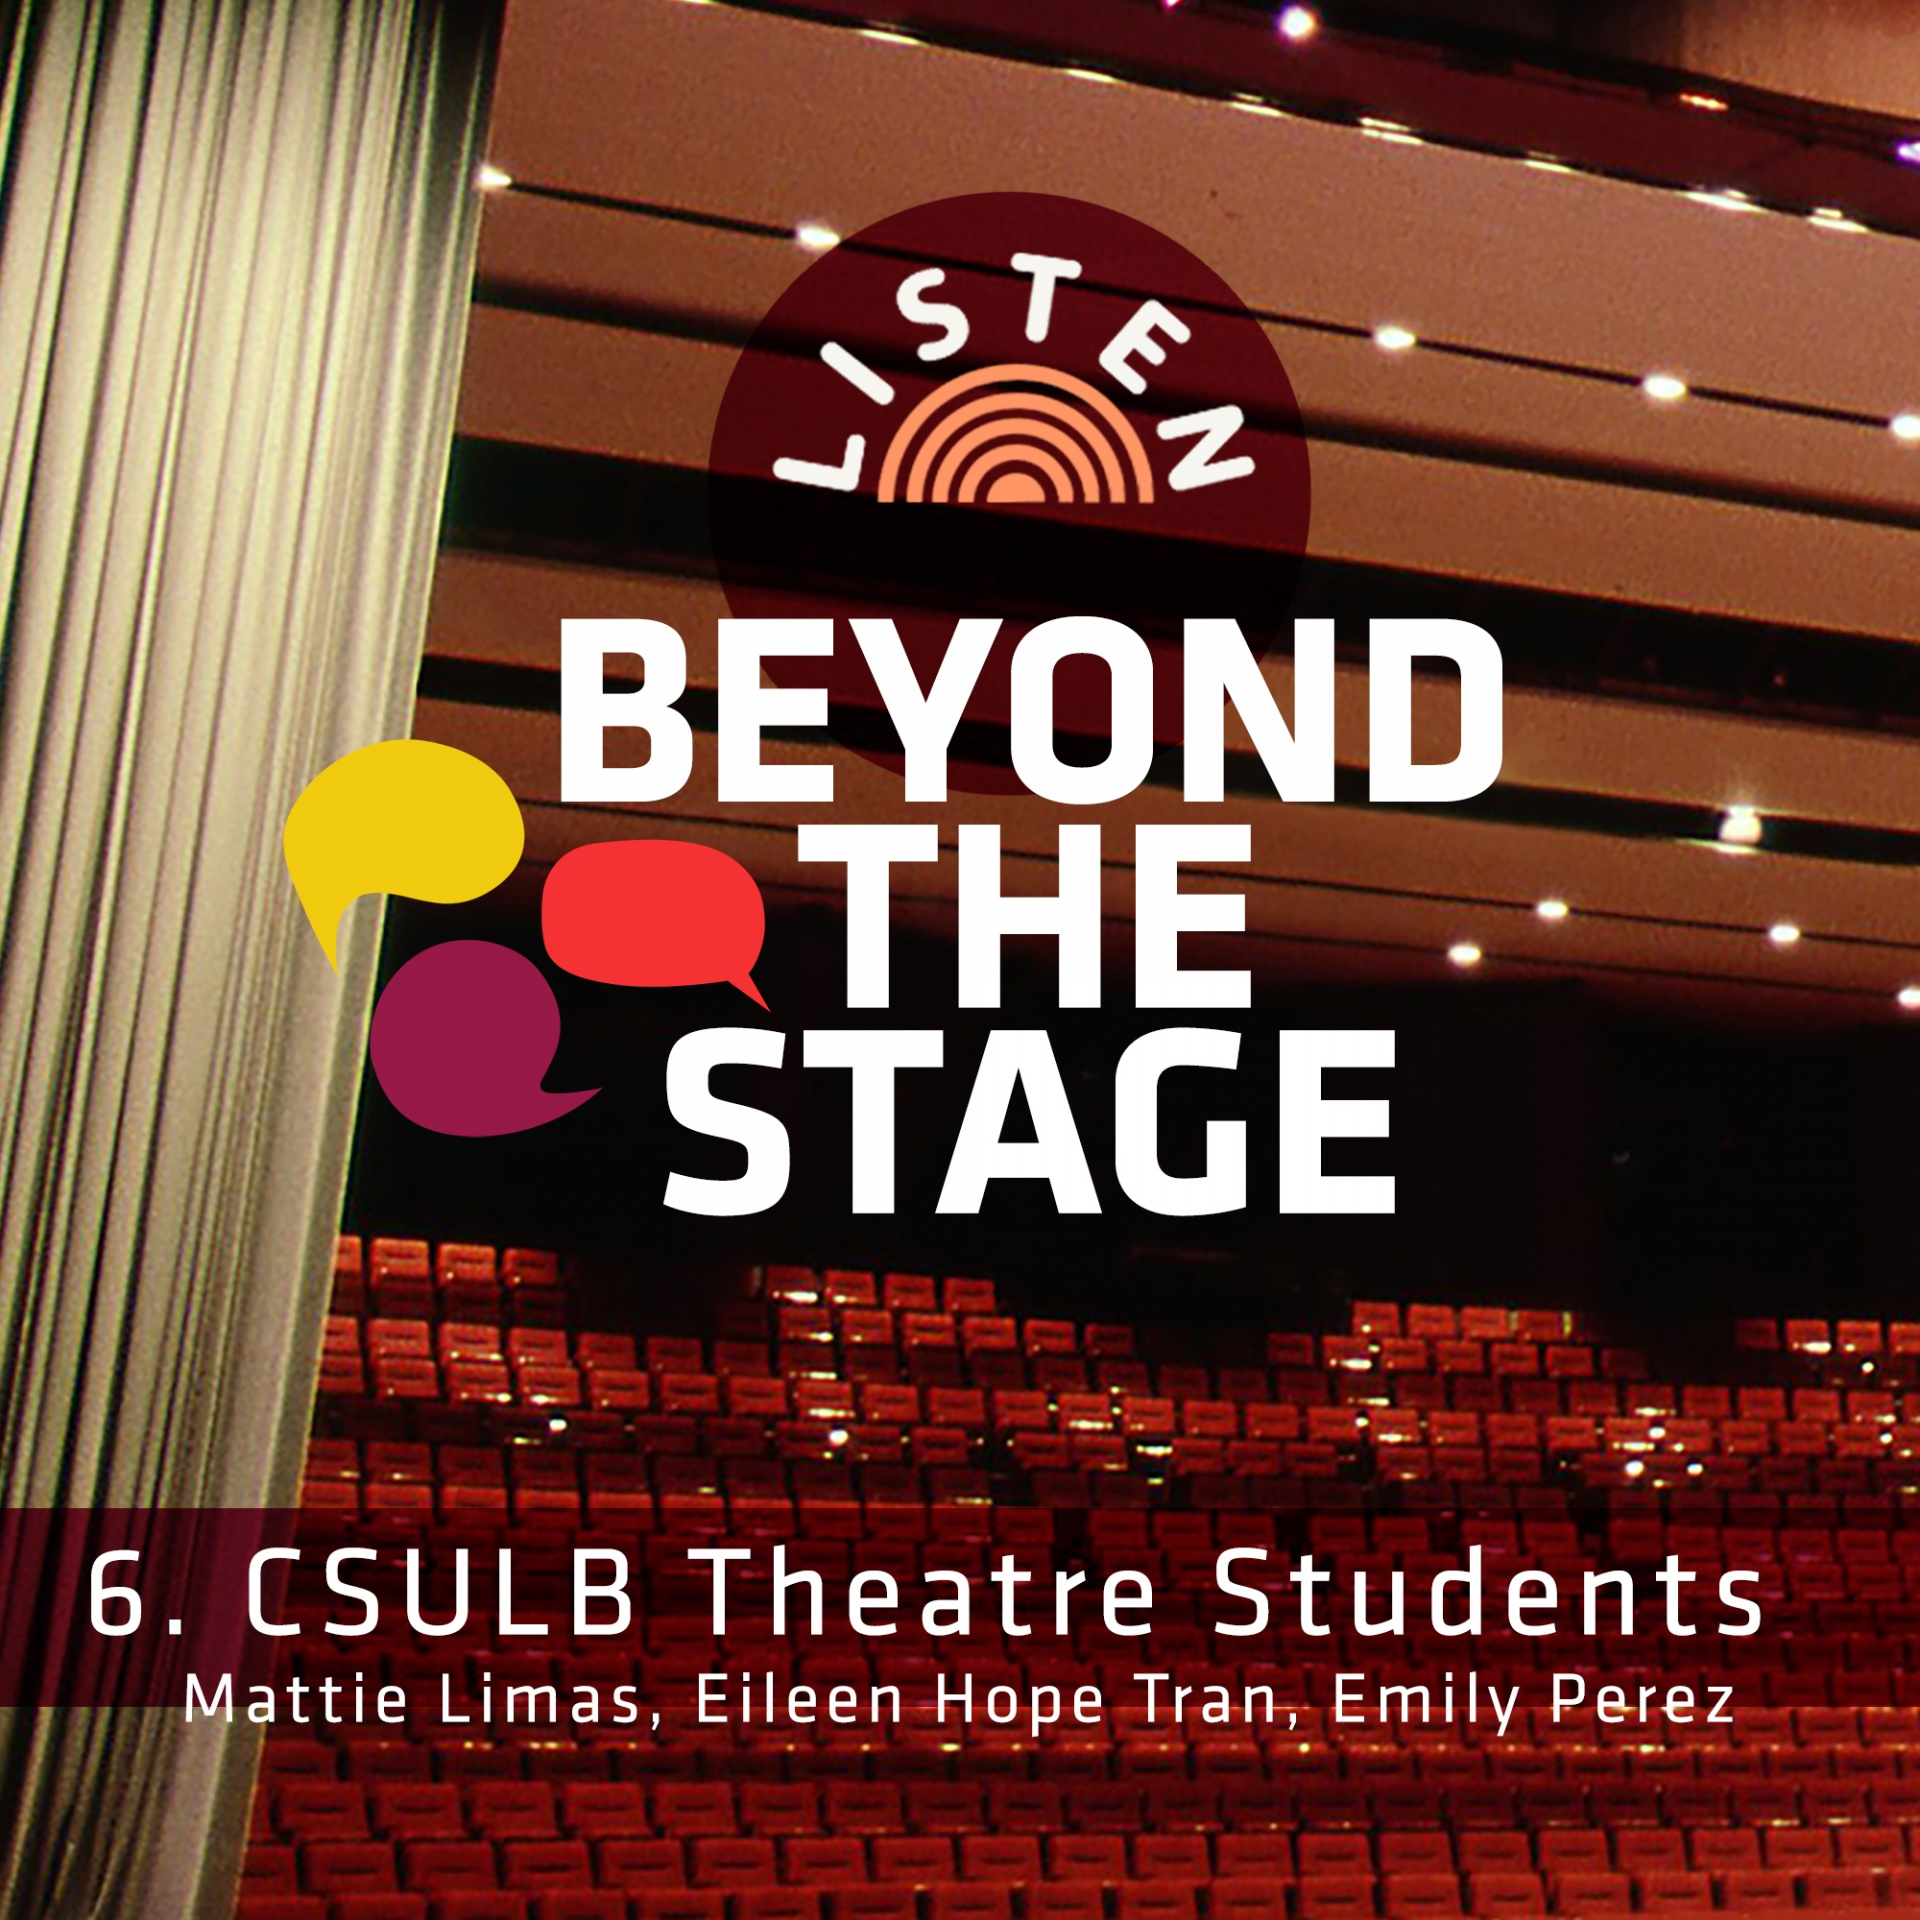 Interior of the Carpenter Center with Beyond the Stage as the headline